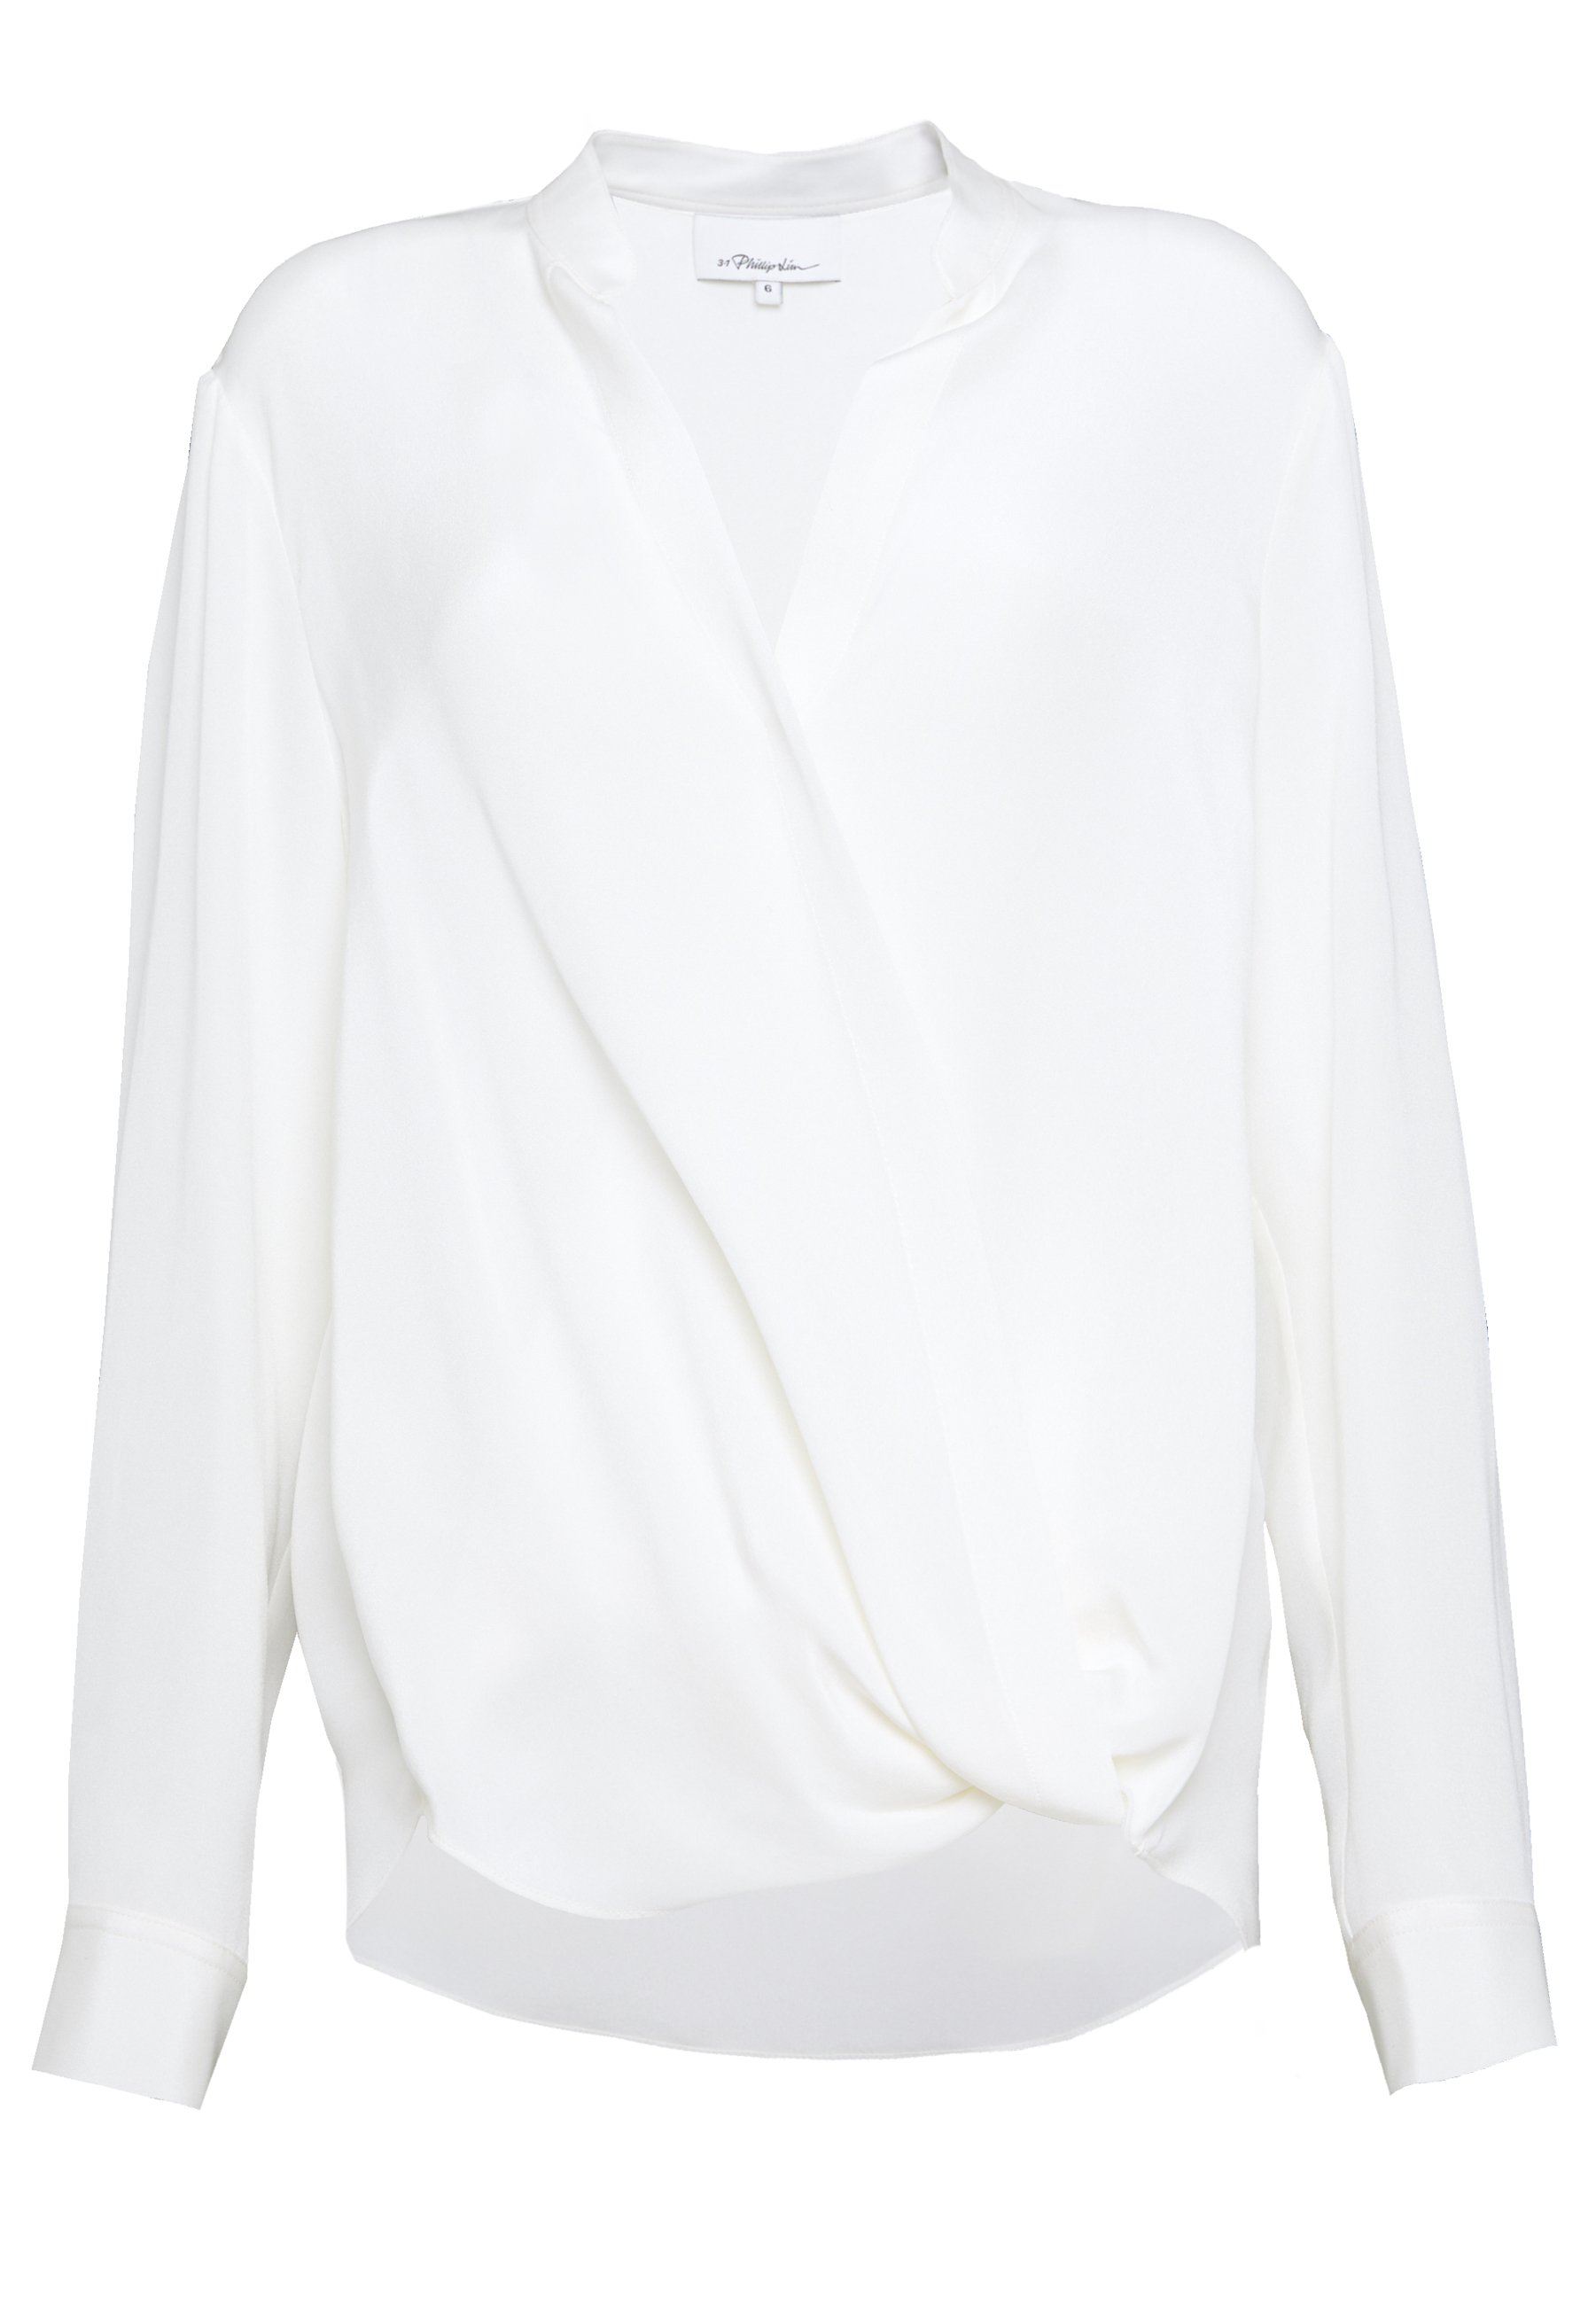 3.1 Phillip Lim Blus - White